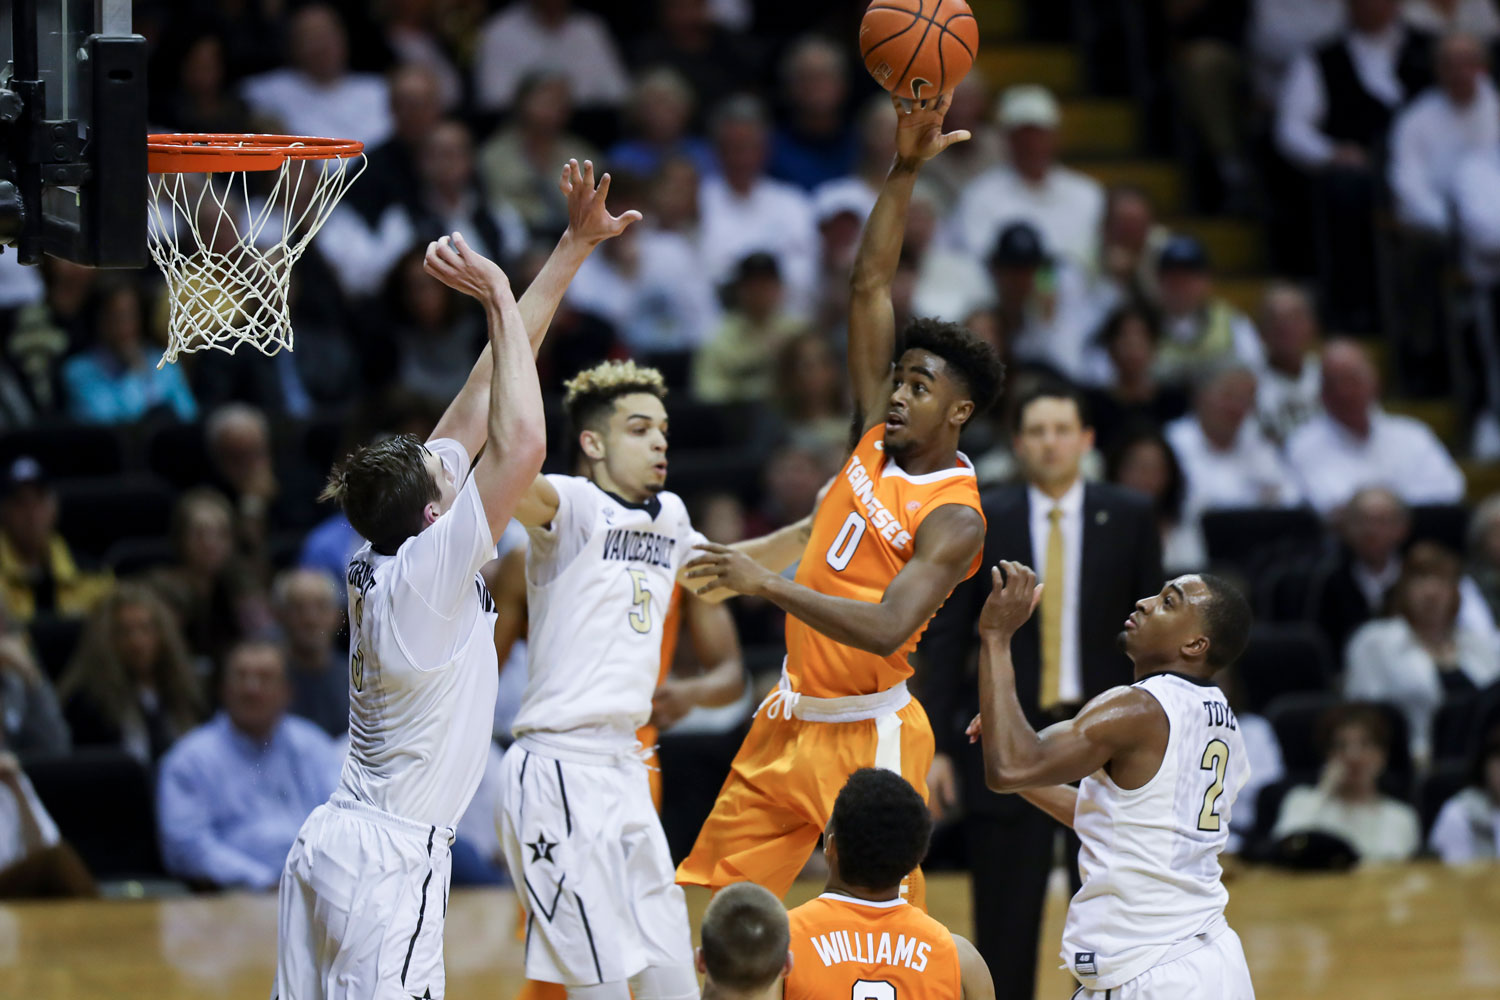 Focus on what matters with Tennessee's basketball program